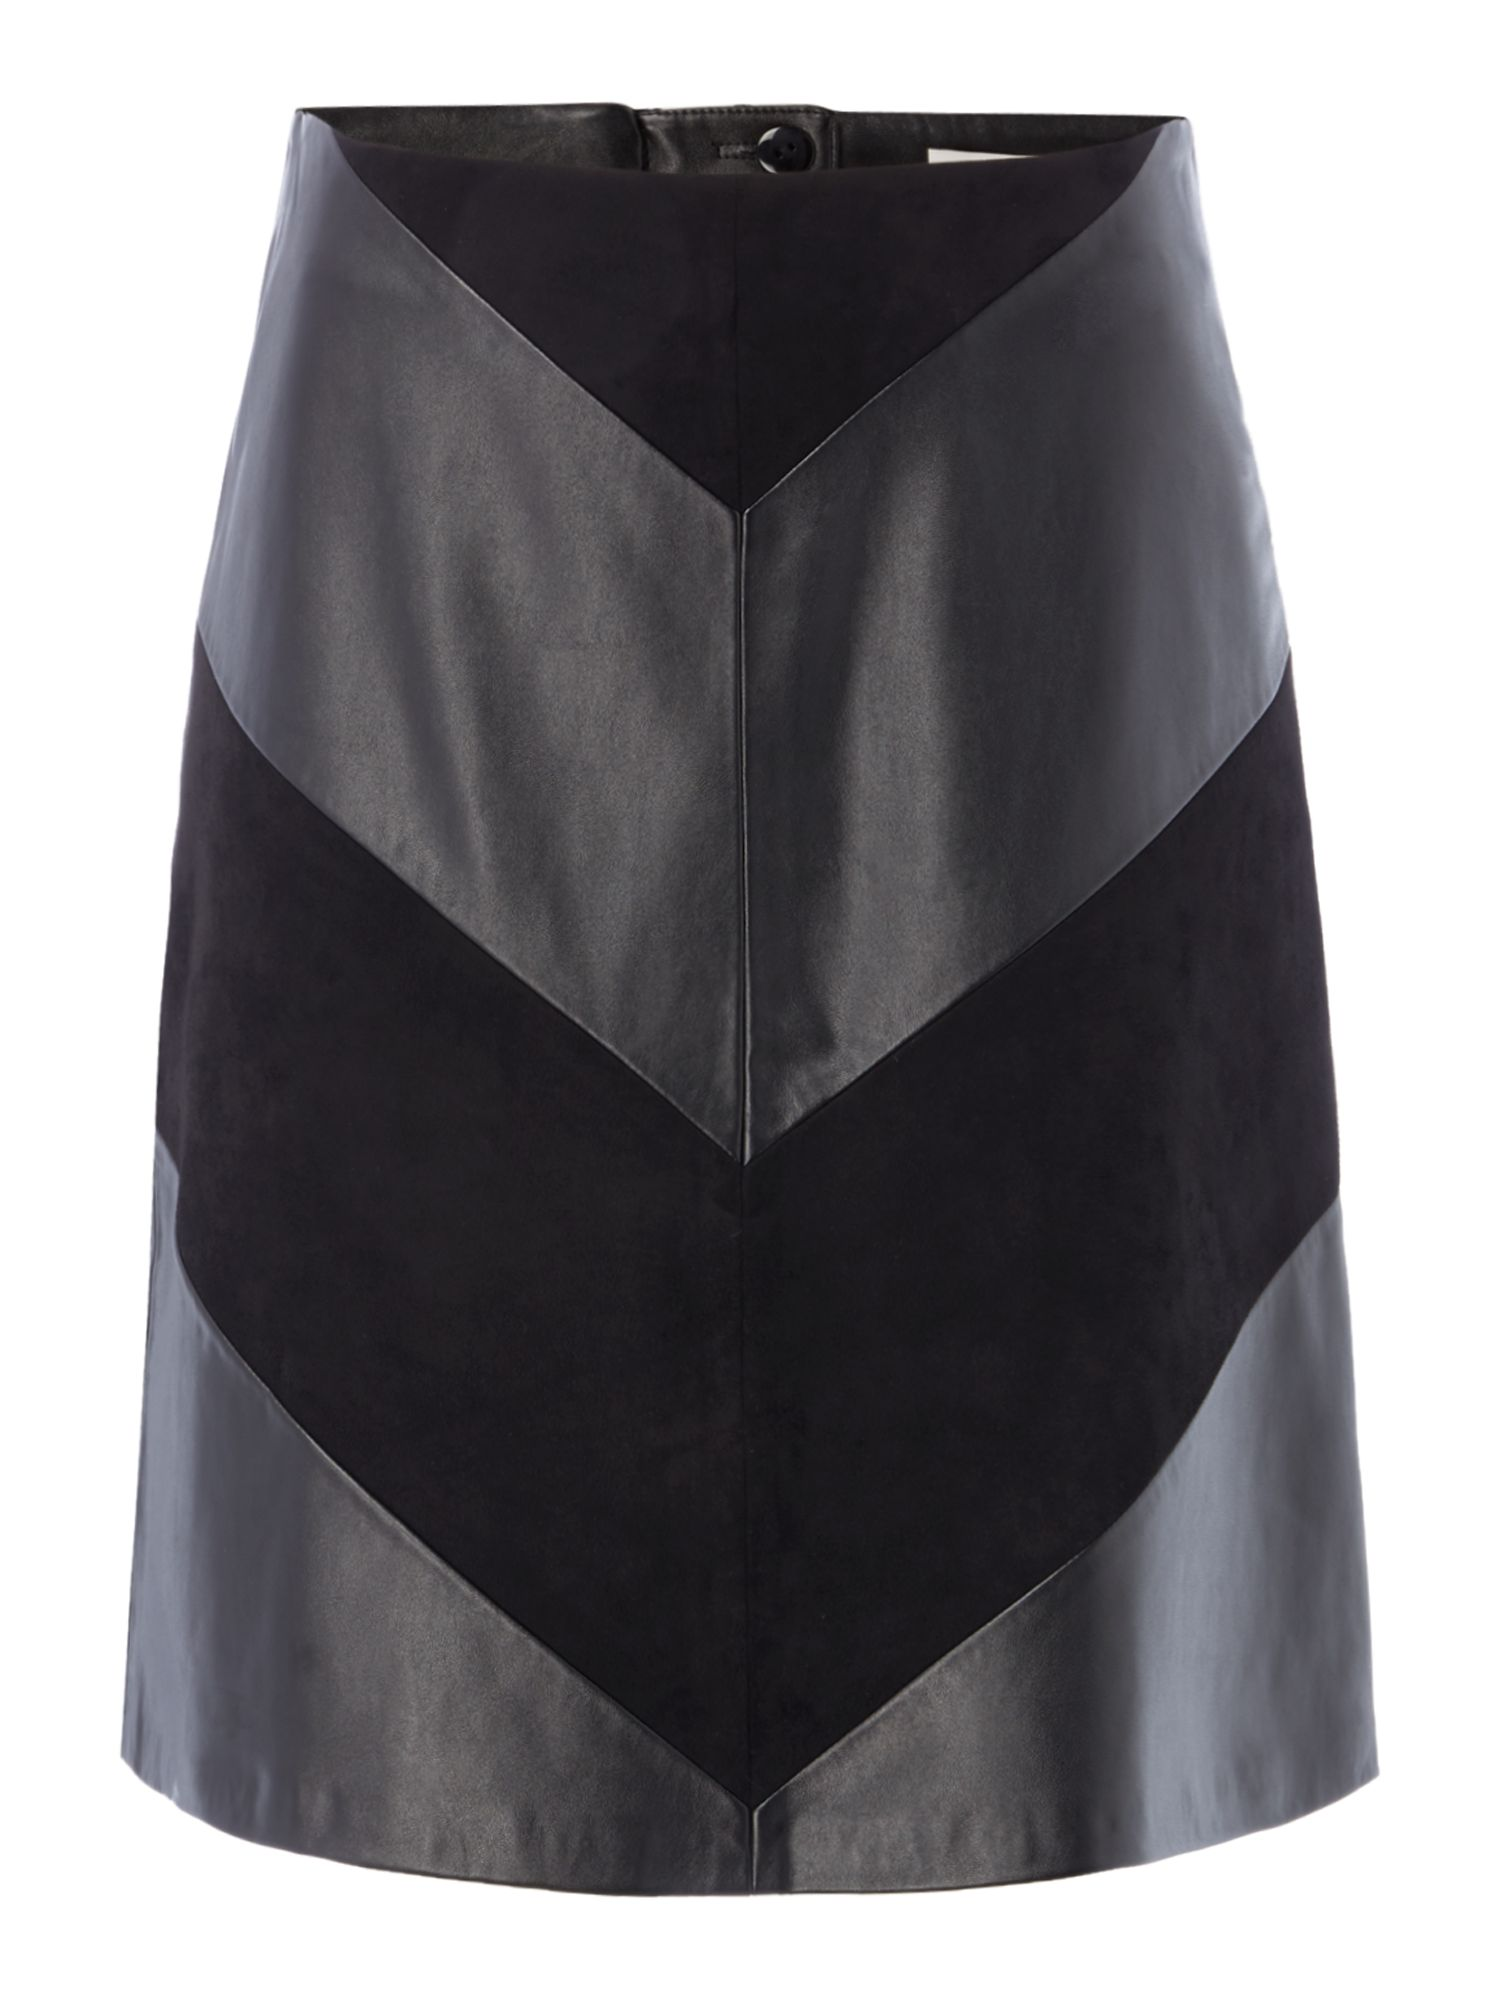 Oui Leatherette skirt, Black